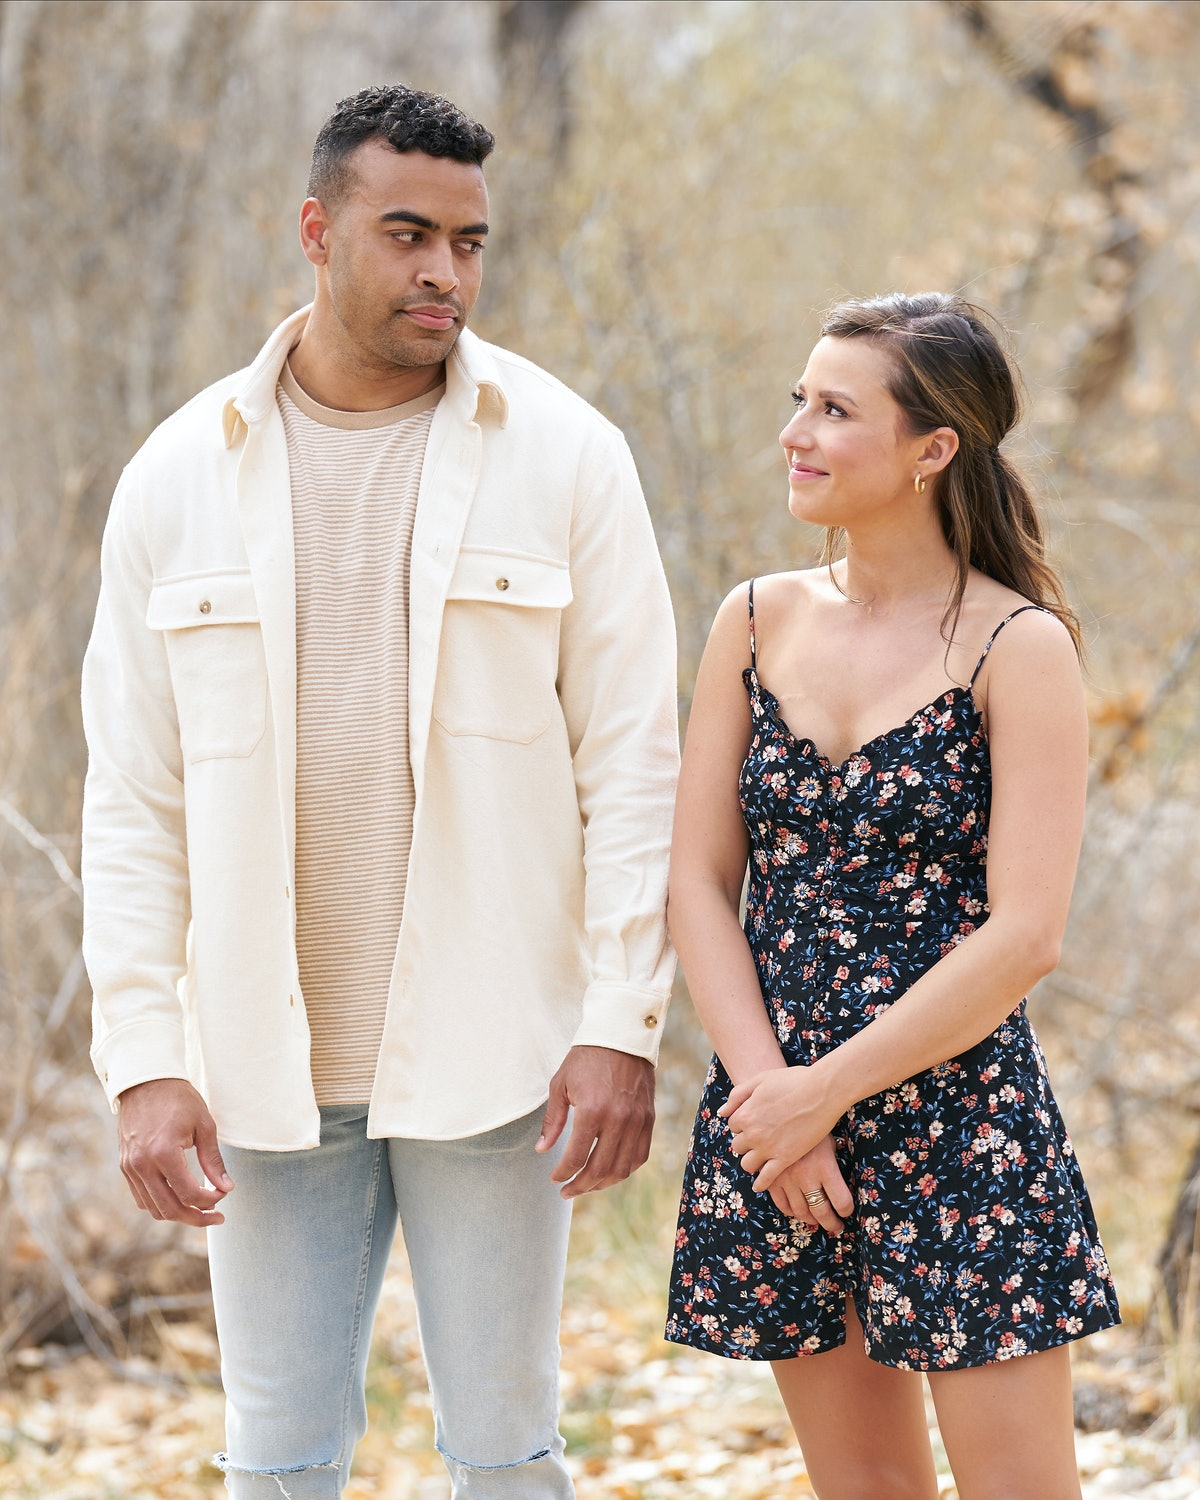 'The Bachelorette's Justin Glaze apologized for his past tweets and took accountability for the harm...